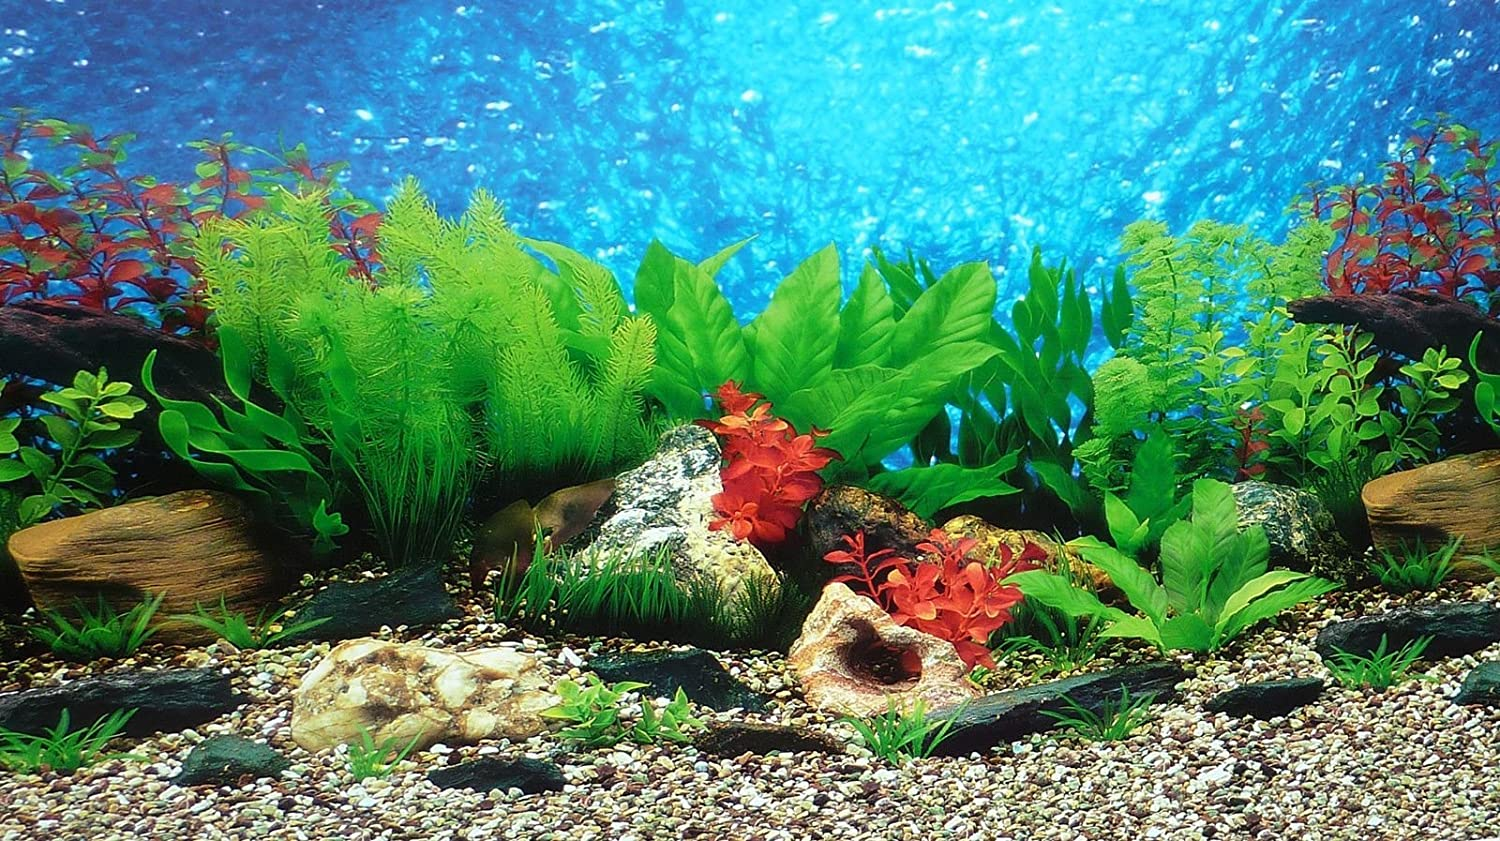 Amazon.com: 9088 20 x 48 Fish Tank Background 2 Sided River Bed ...